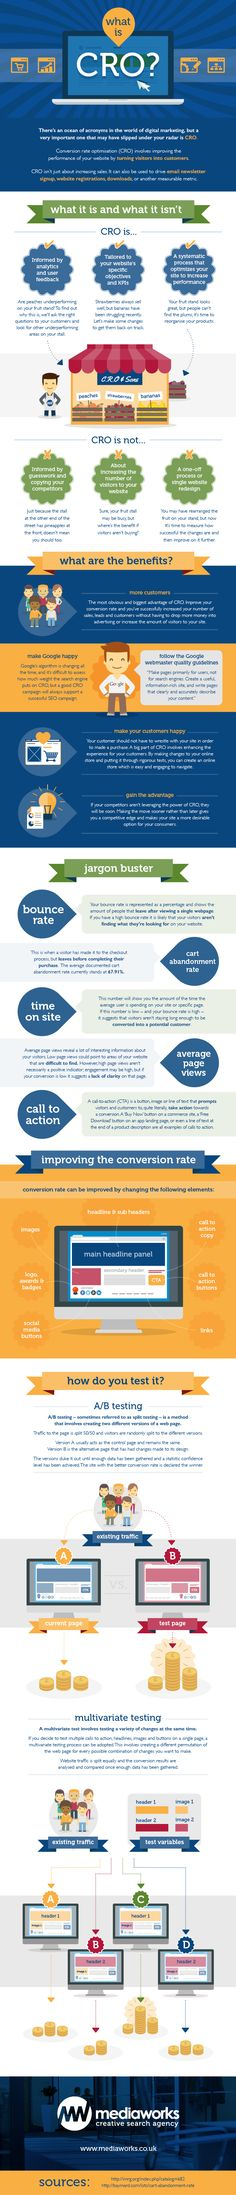 What is CRO? (Conversion Rate Optimization)